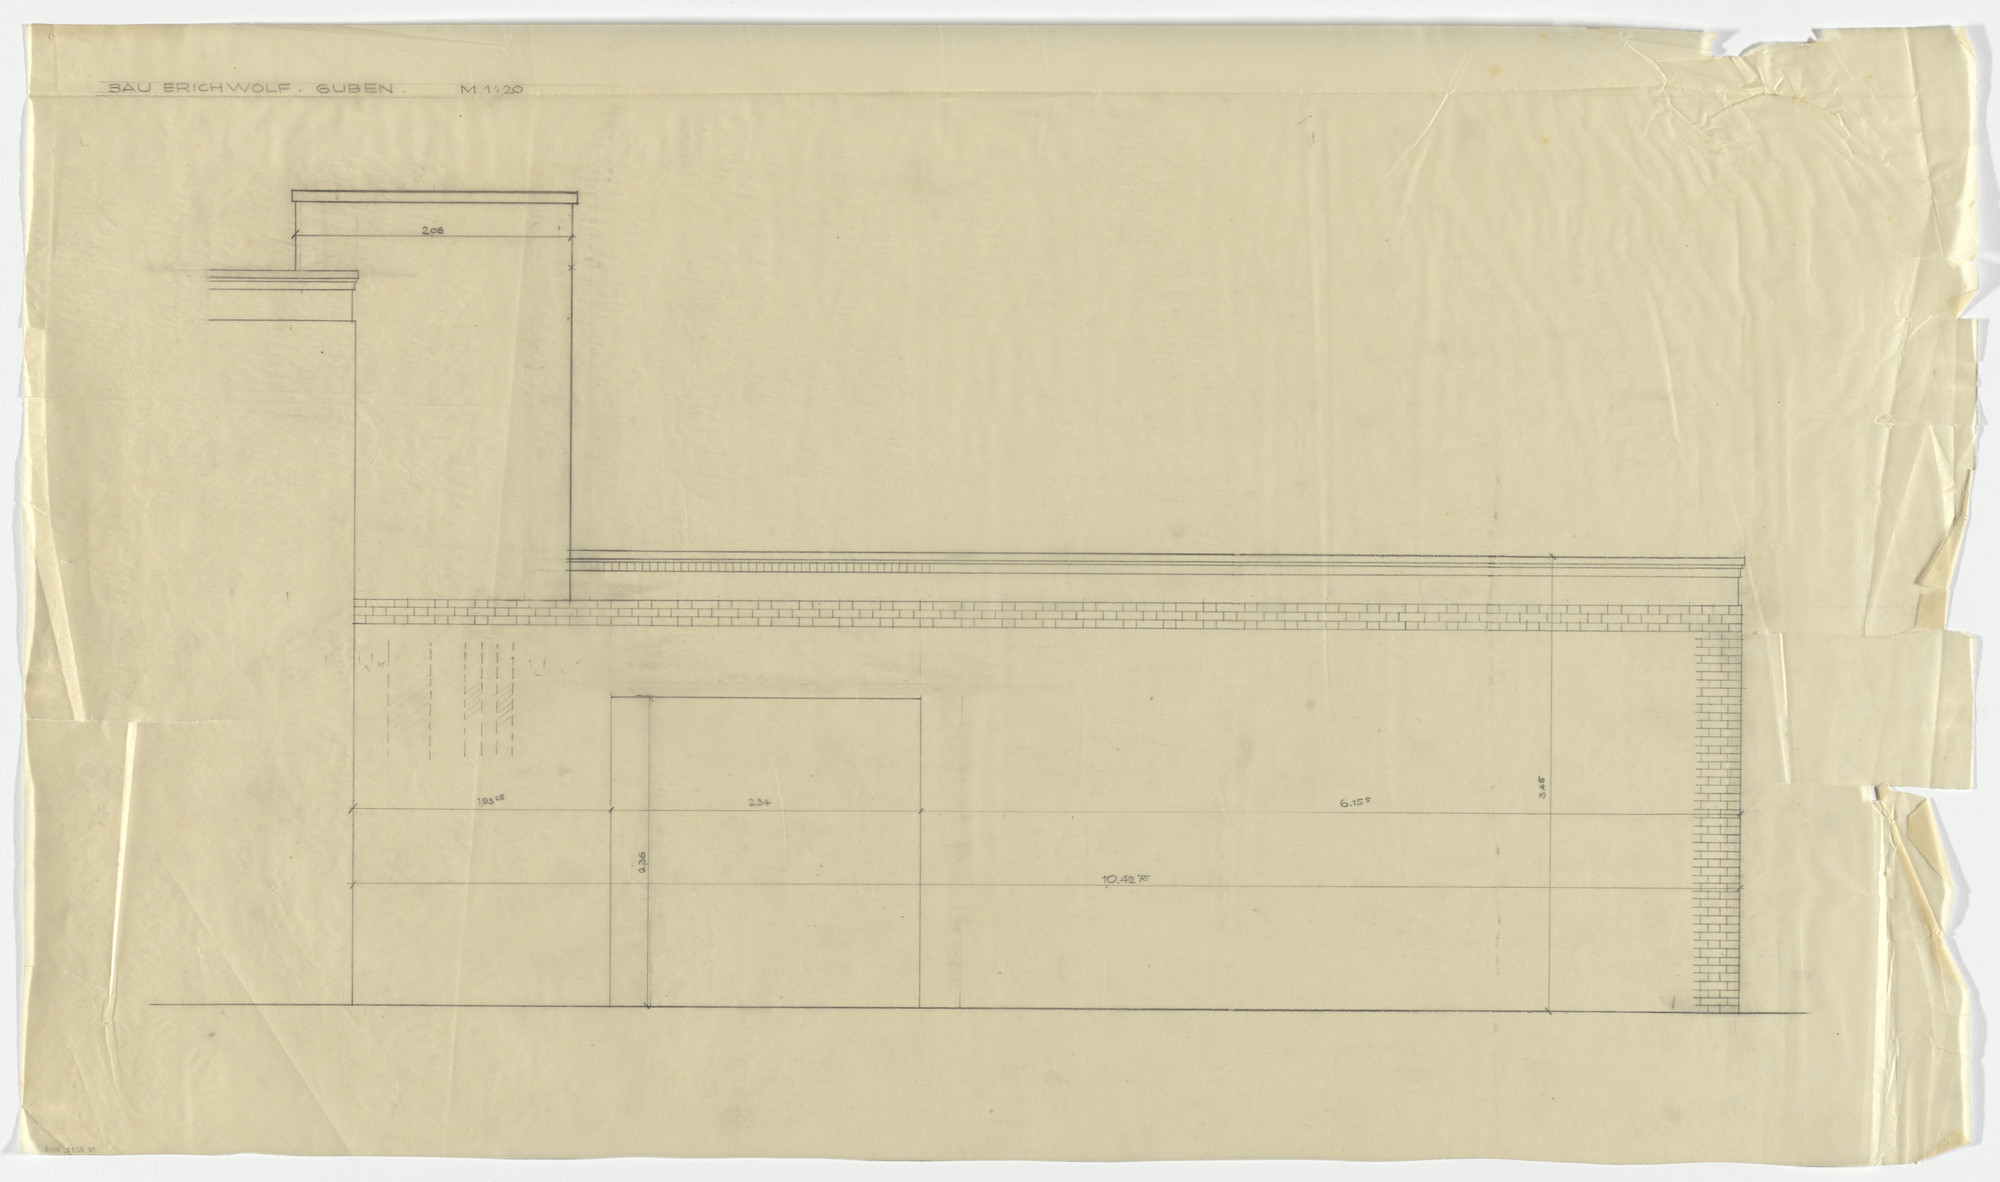 Ludwig Mies van der Rohe. Wolf House, Gubin, Poland (South wall elevation). 1925-1927